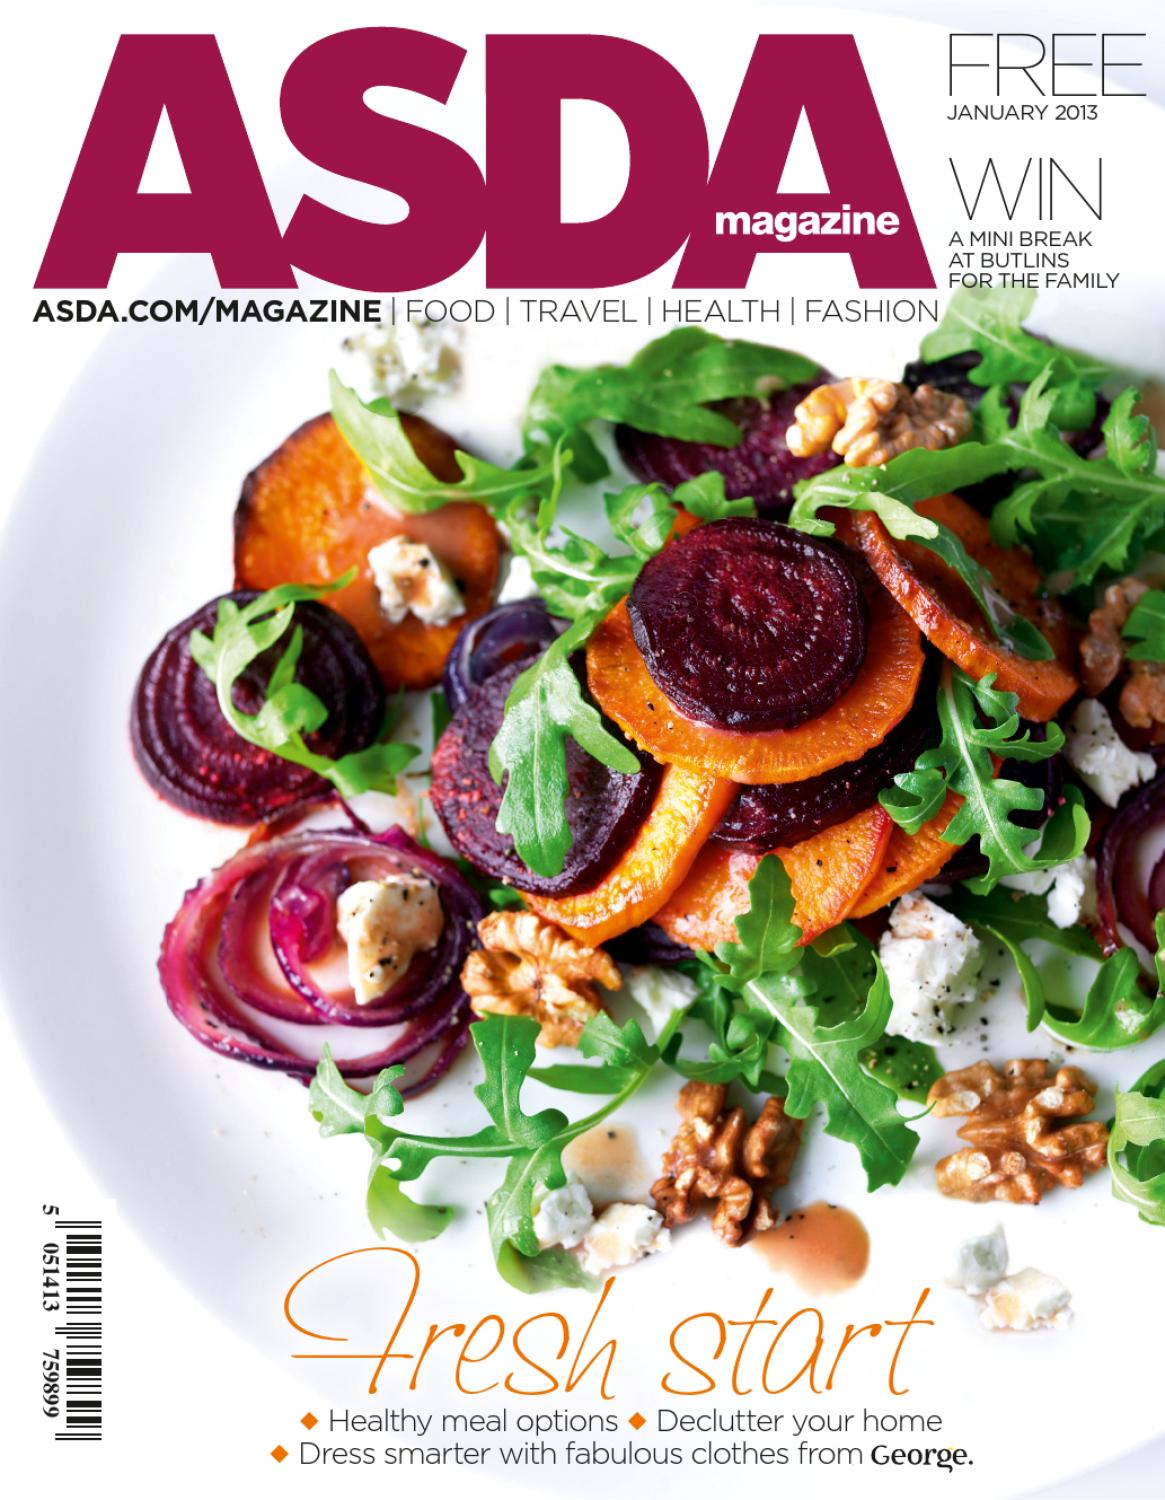 Marvelous Asda Magazine January 2013 By Asda Issuu Download Free Architecture Designs Scobabritishbridgeorg